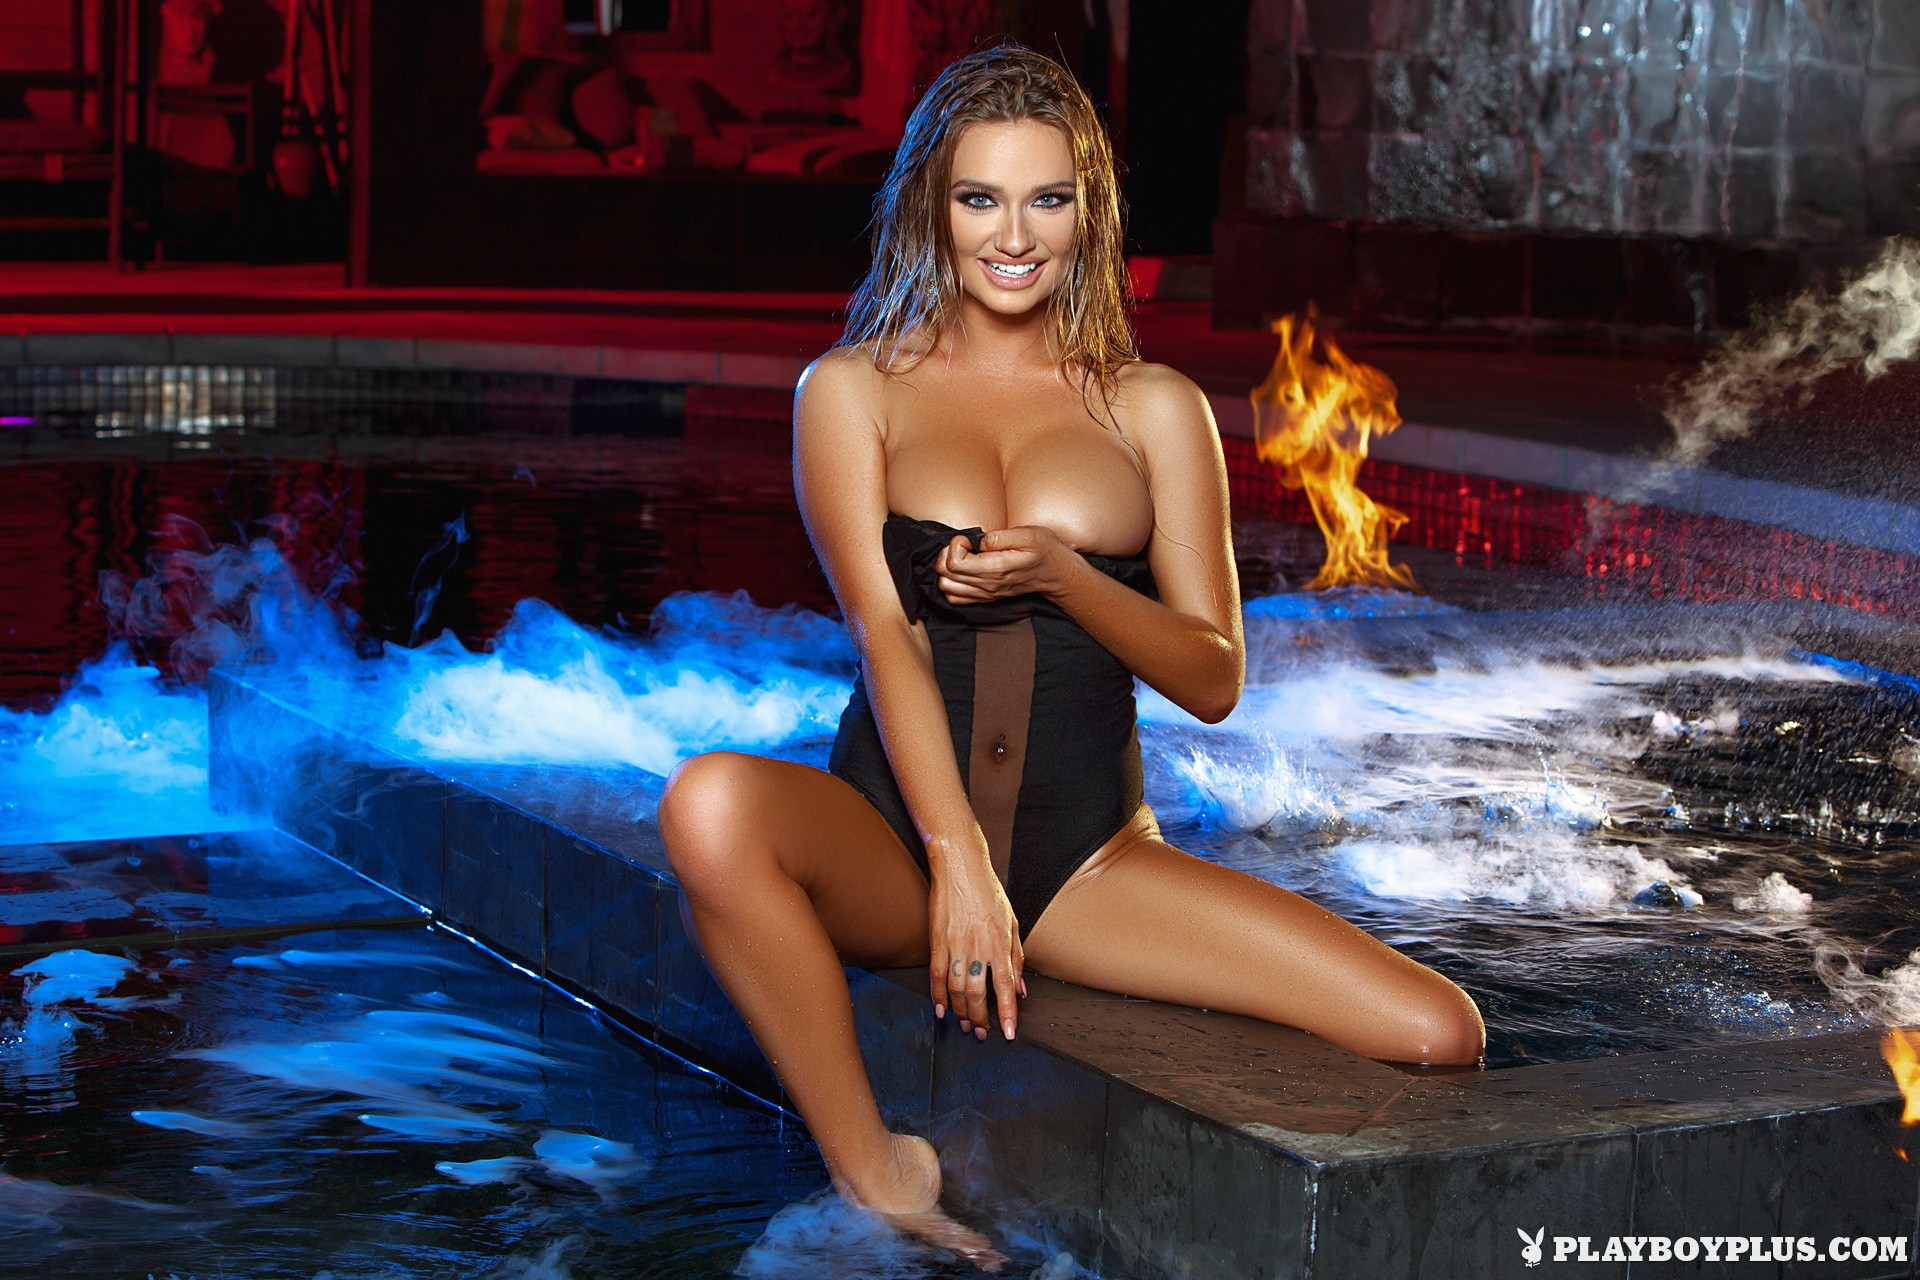 Brittney Shumaker nud in Nightswimming for Playboy | Daily Girls @ Female Update